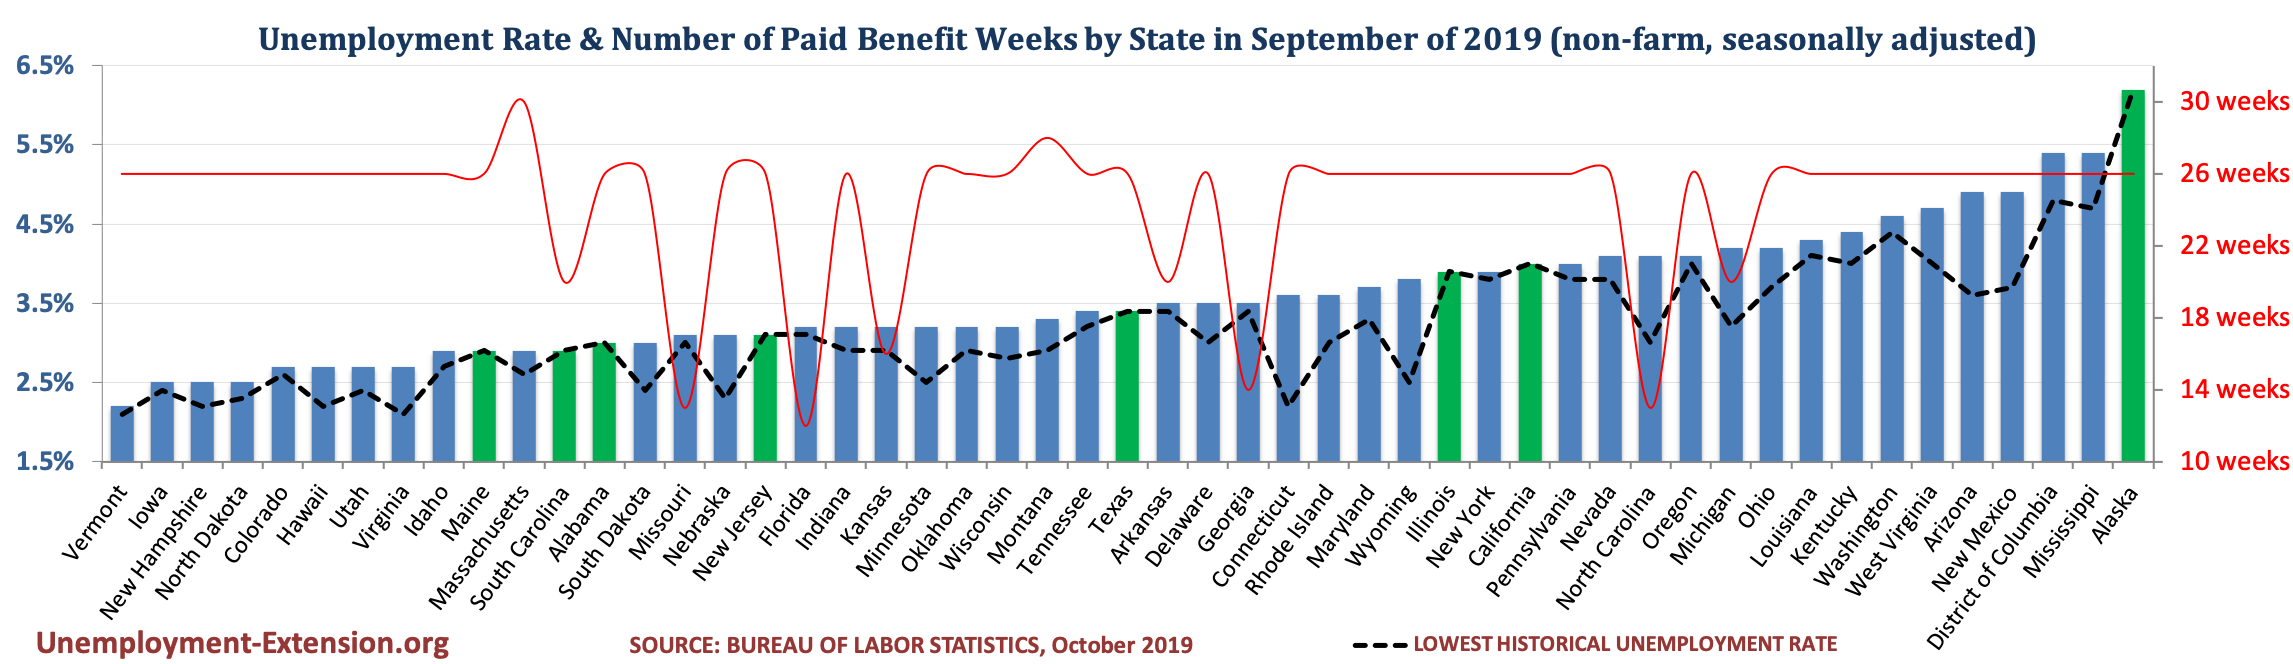 Unemployment Rate and Number of Paid Unemployment Benefit weeks by State (non-farm, seasonally adjusted) in September of 2019